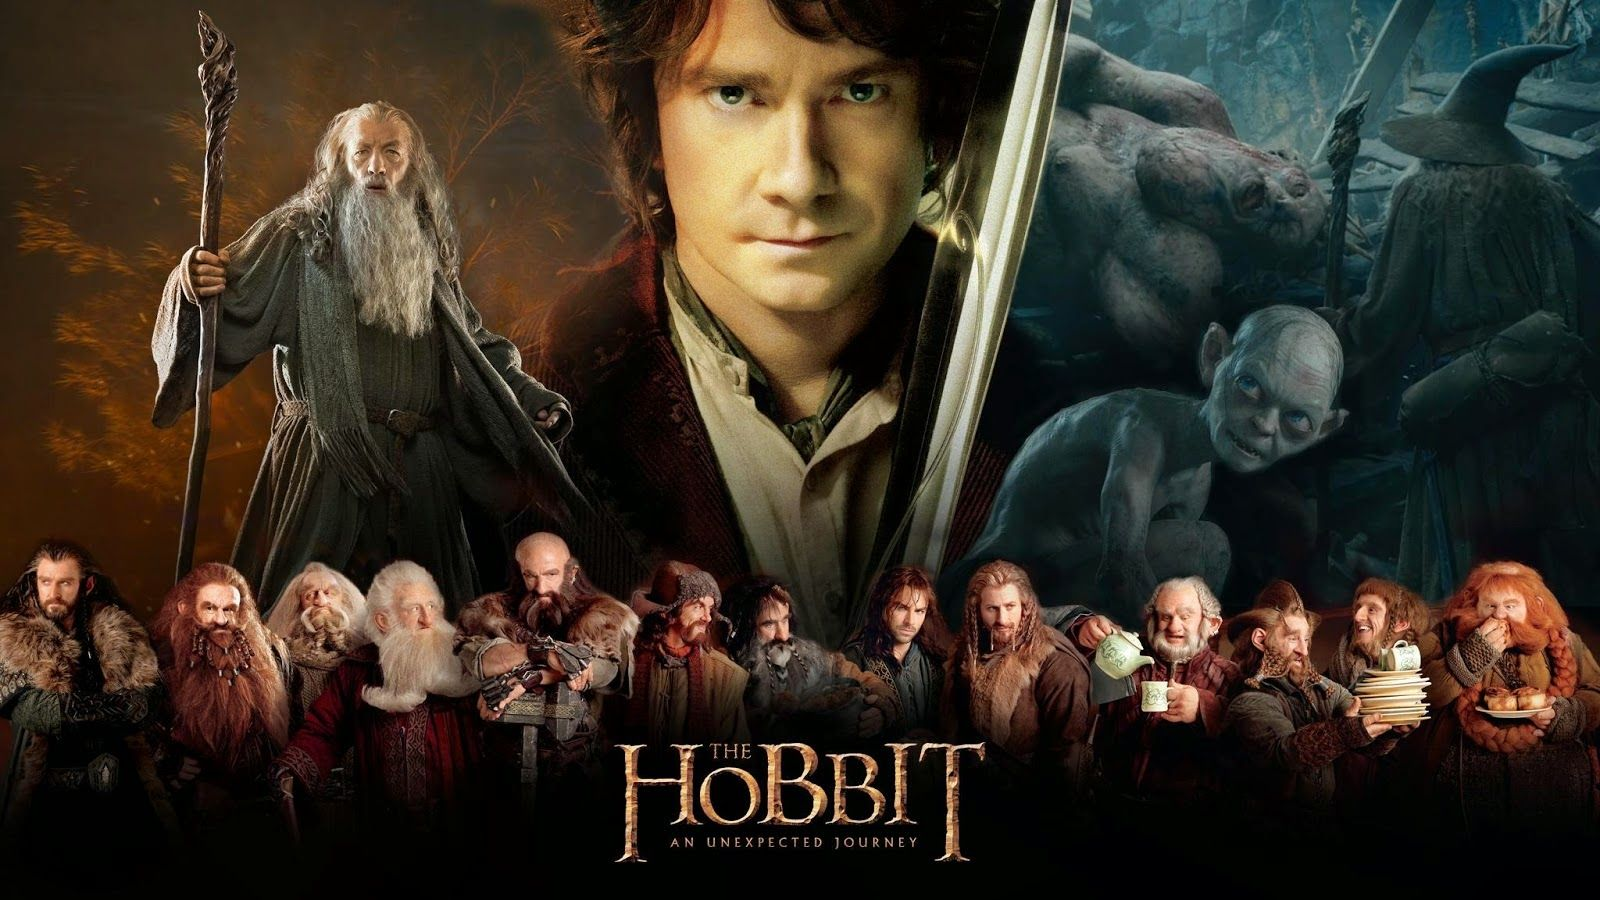 the hobbit movie download in hindi 480p